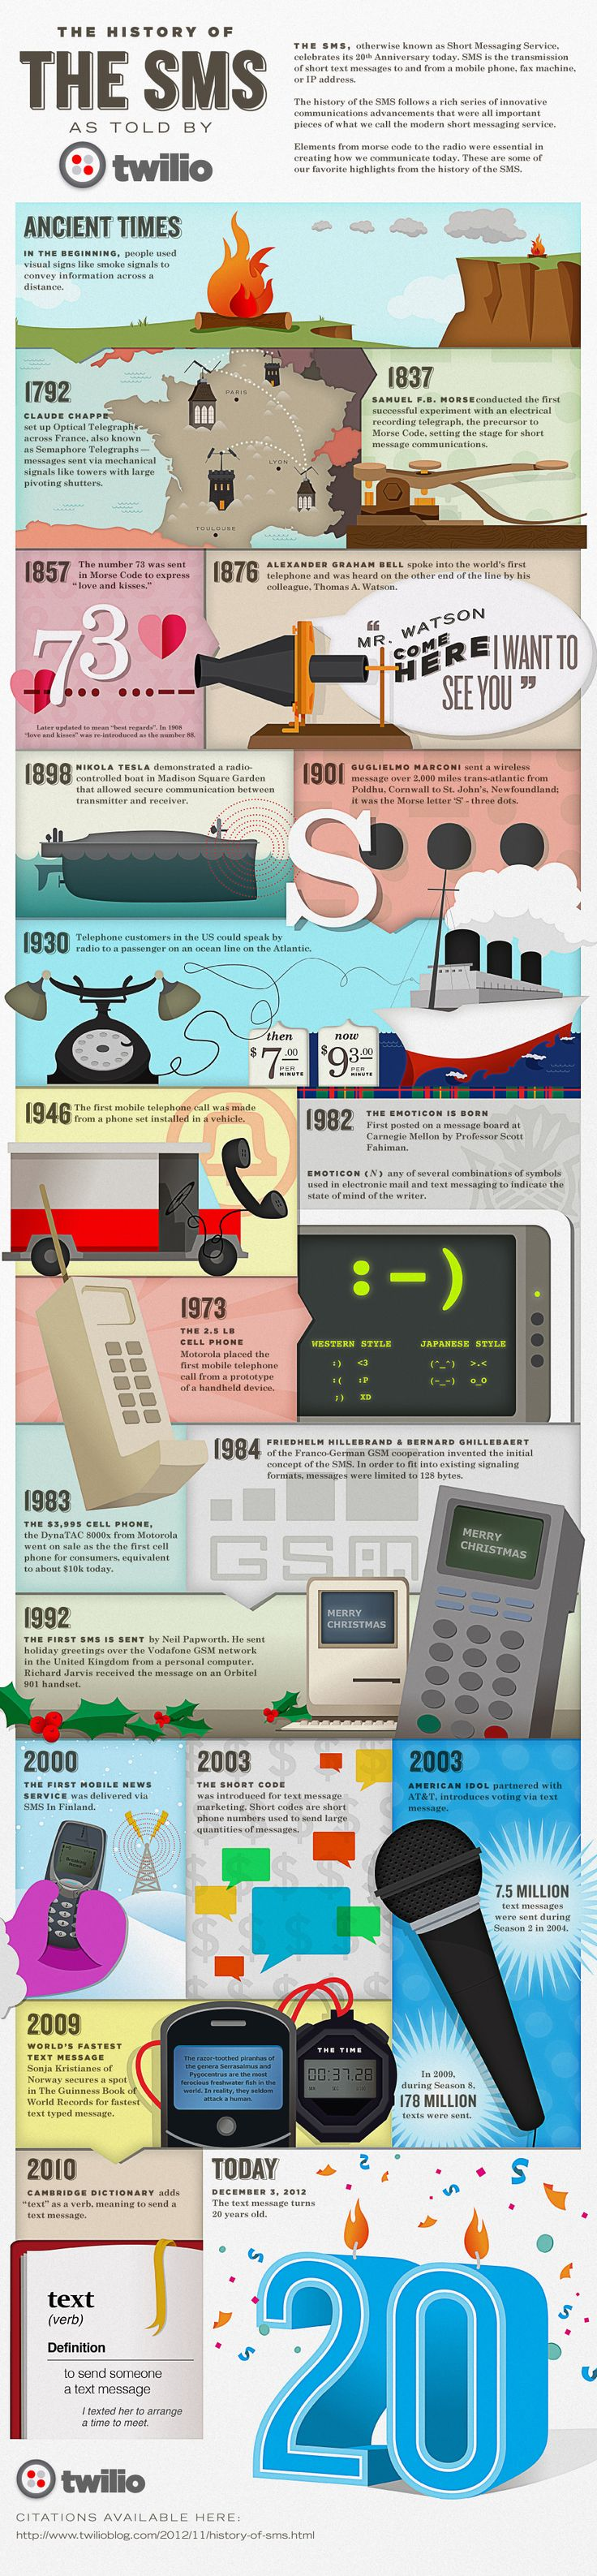 The history of the SMS   Visit our new infographic gallery at visualoop.com/